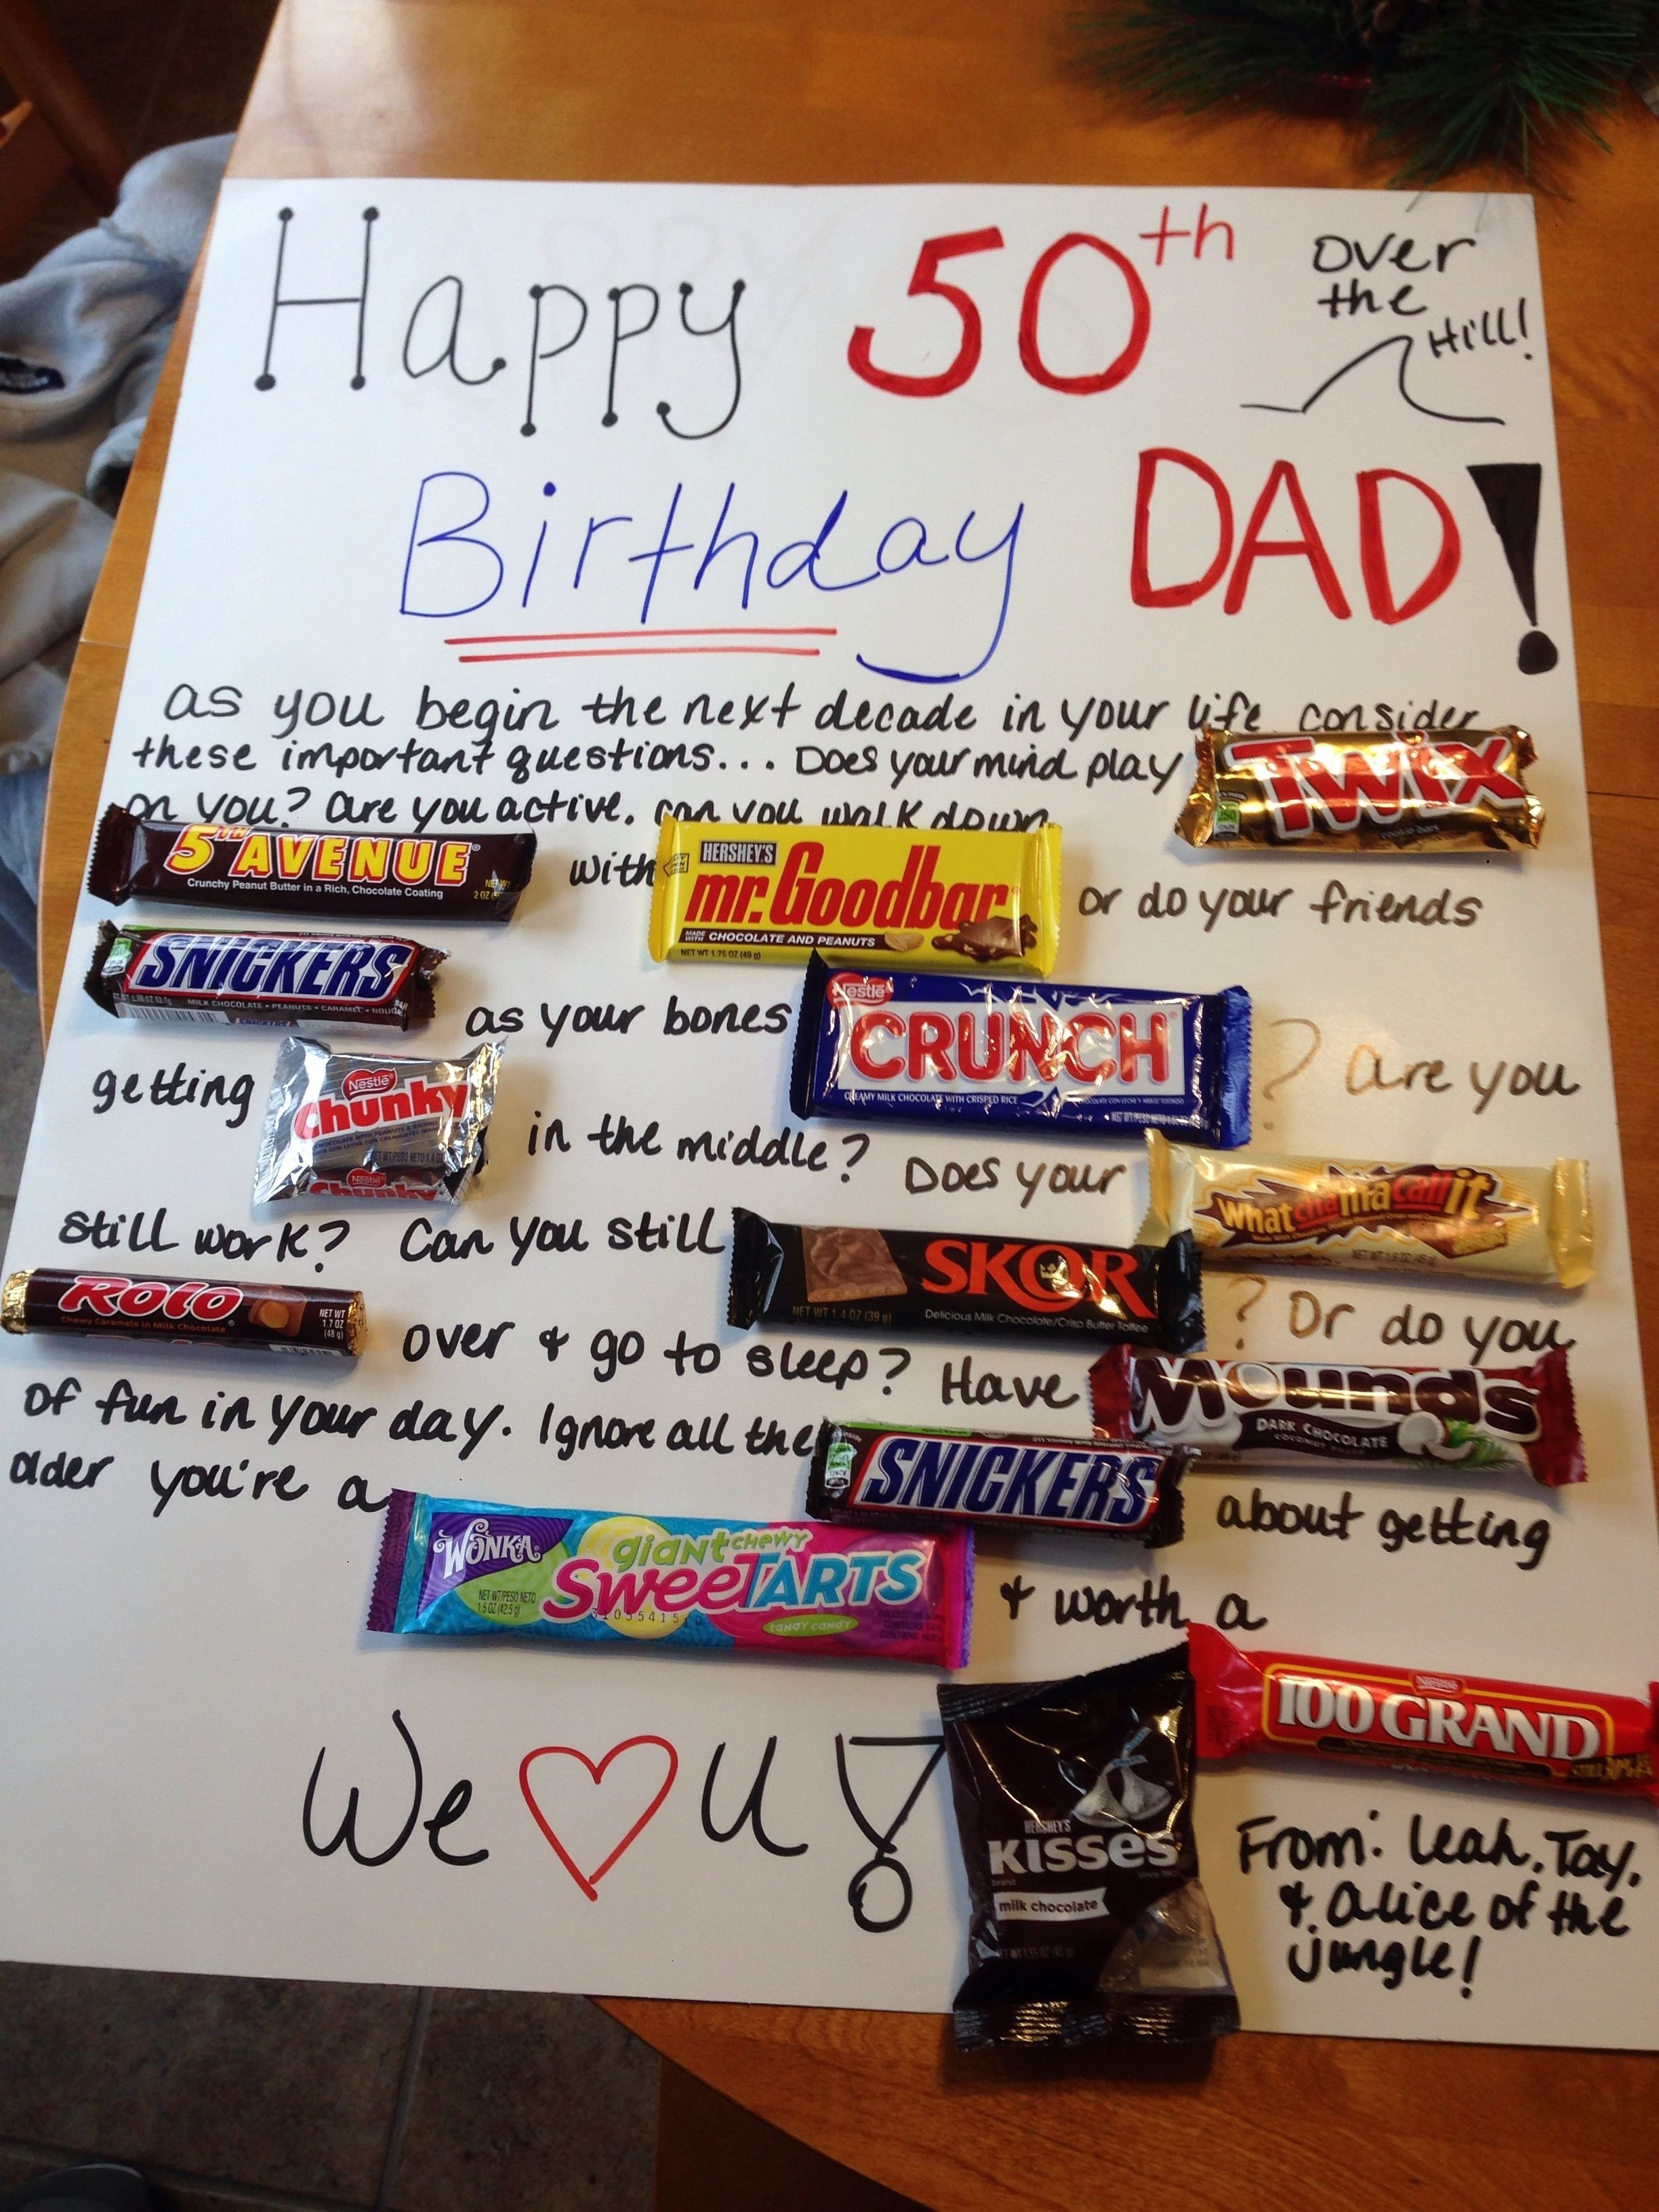 40th birthday ideas: 50th birthday gift ideas for uncle https://www